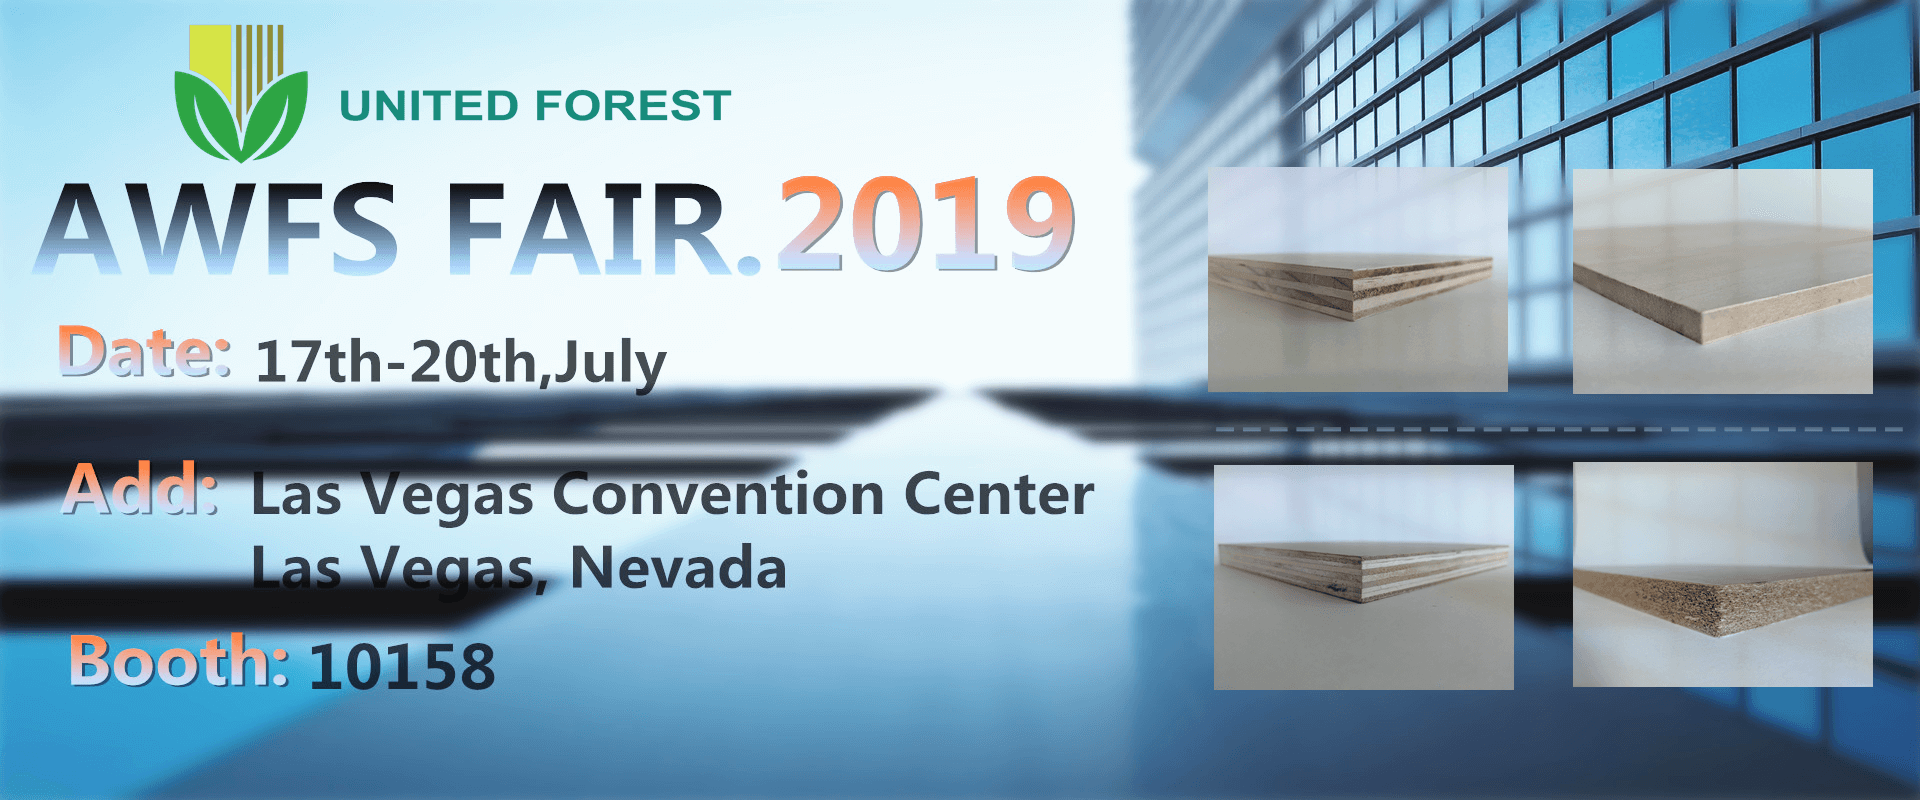 AWFS Fair 17th-20th July,2019  Las Vegas Convention Center,  Las Vegas, Nevada.